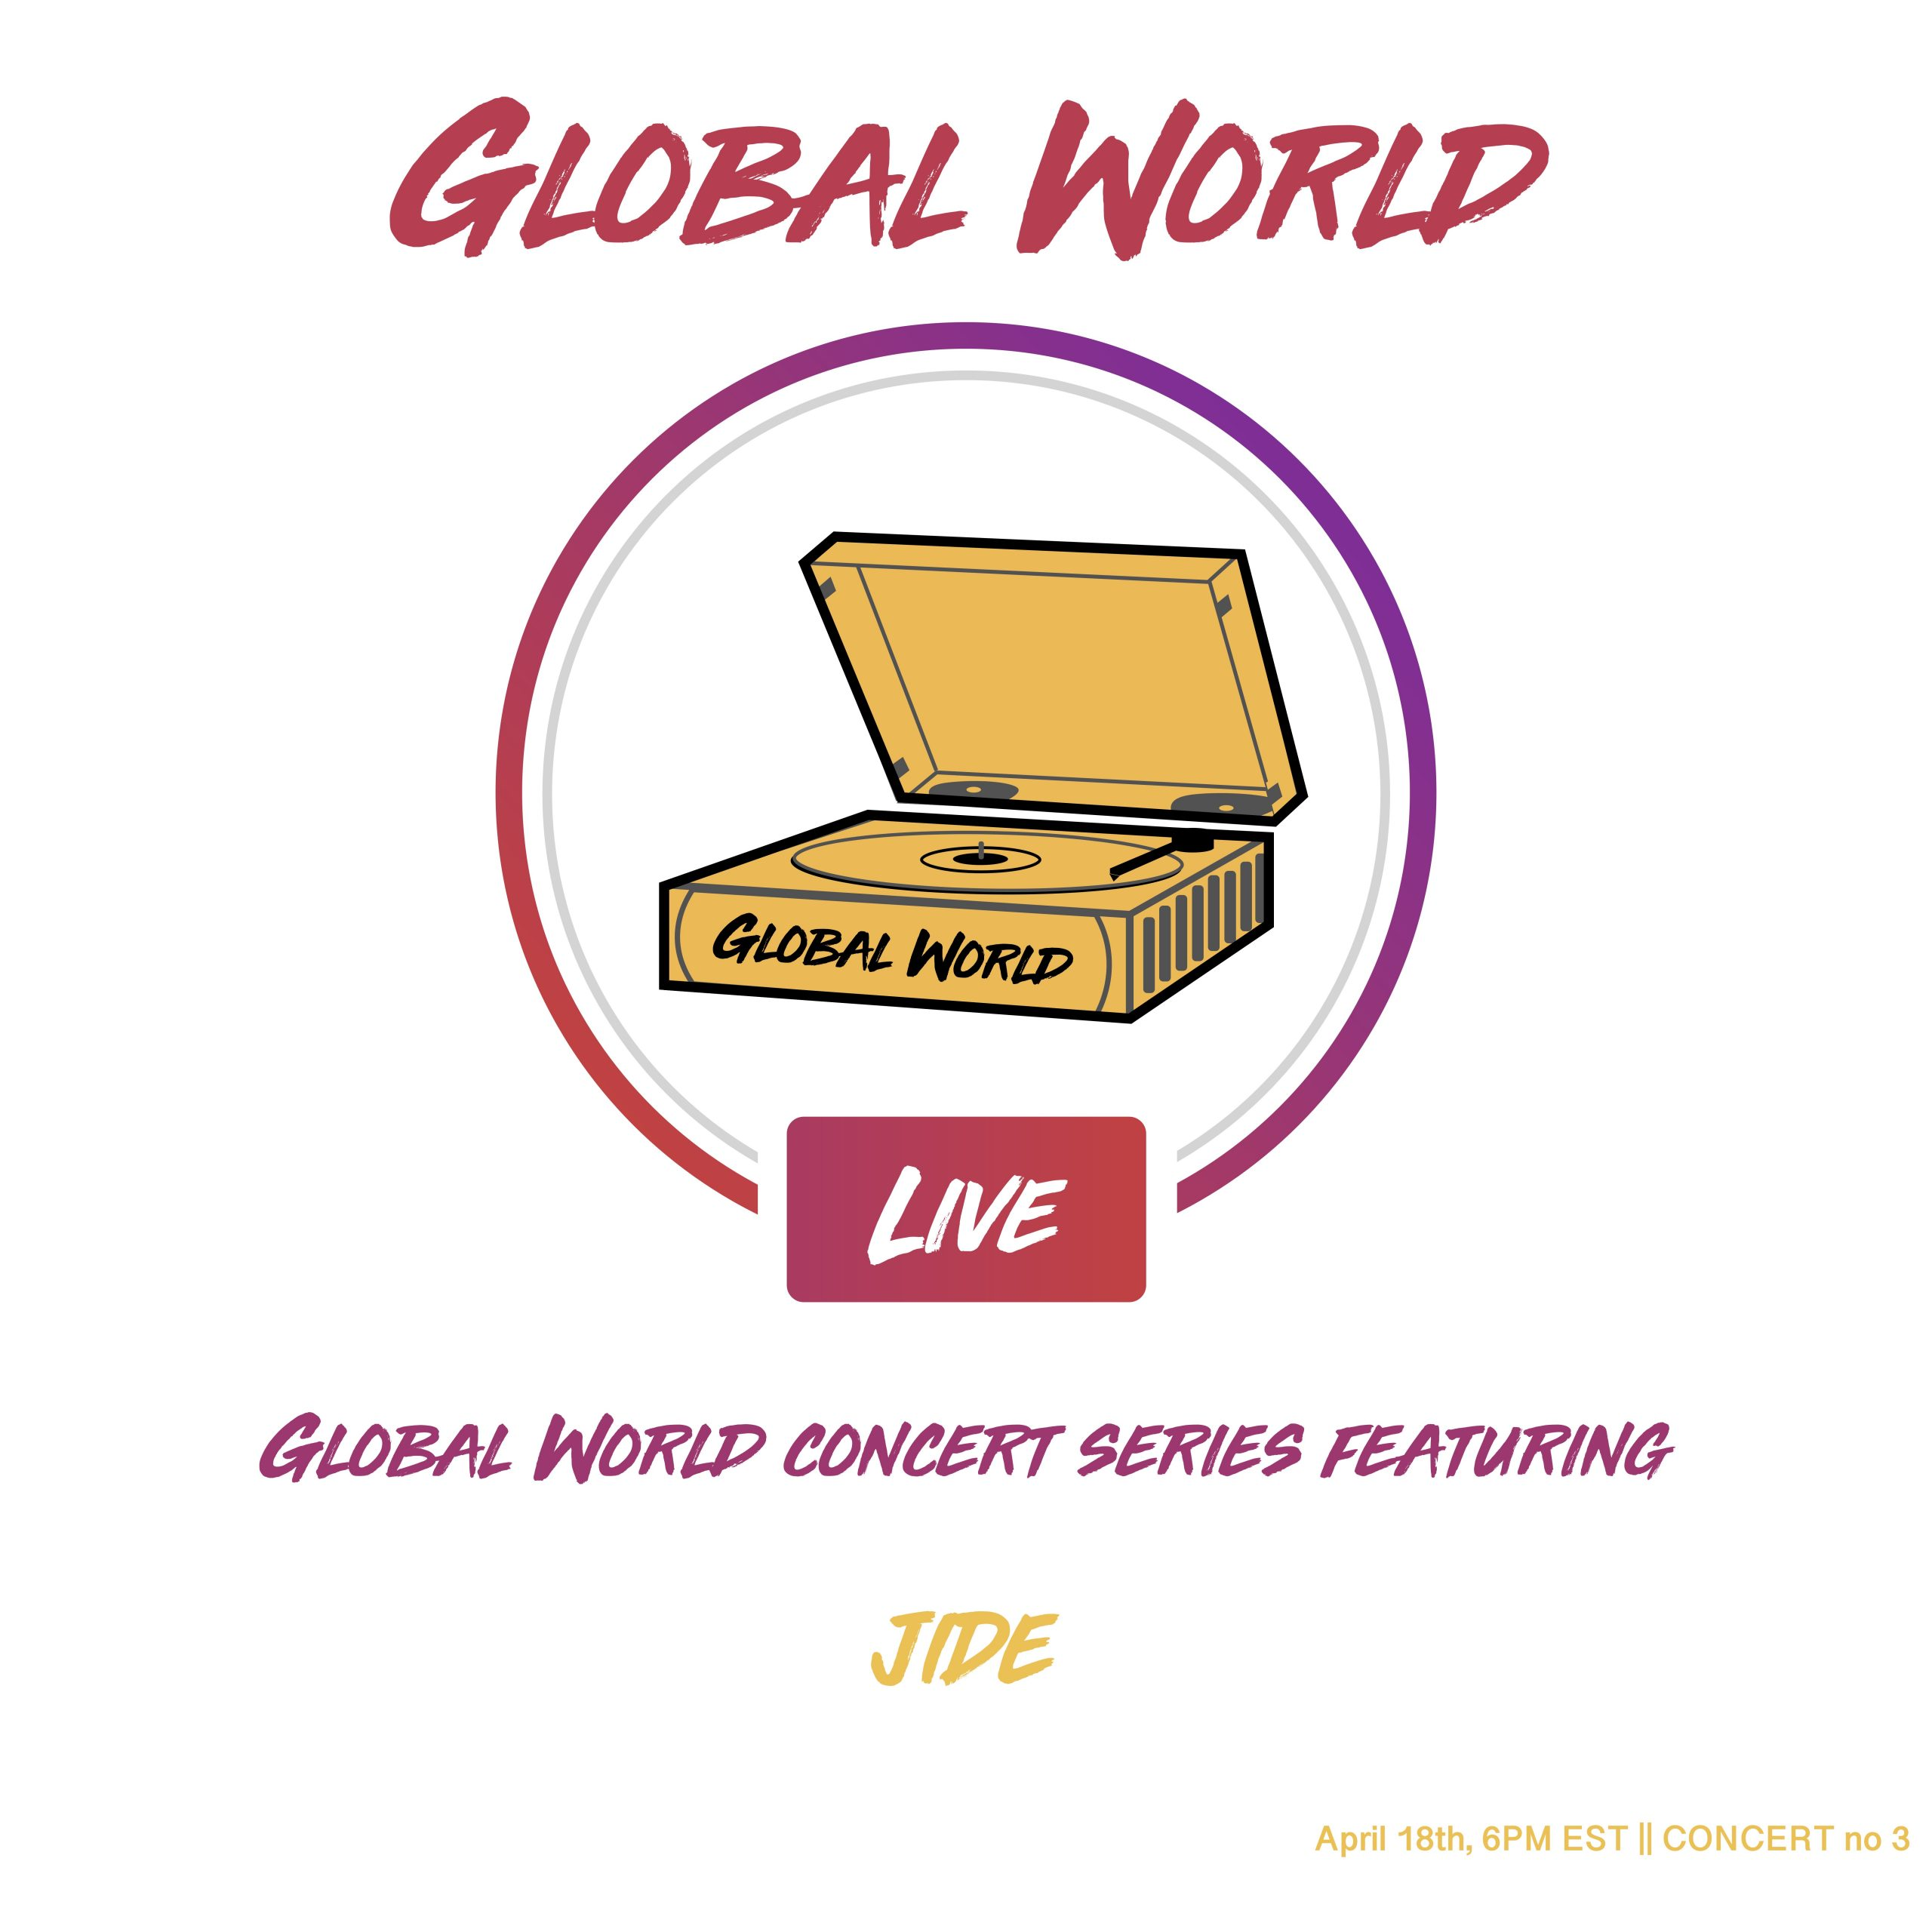 Global World Concert Series continues this Saturday April 18th, Featuring Jidé